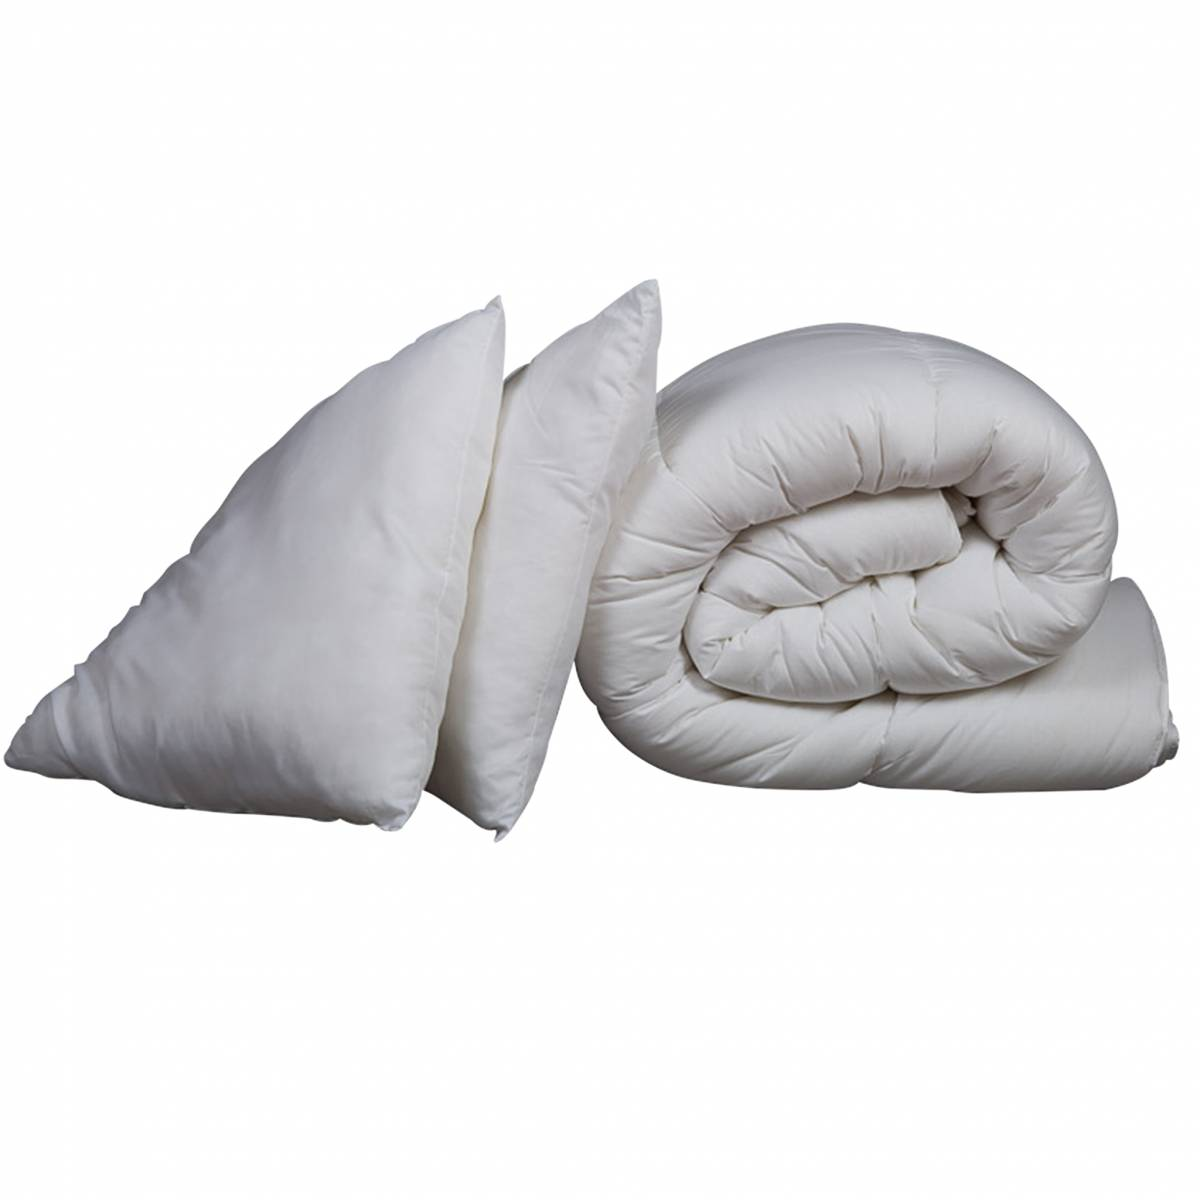 Someo Pack couette hiver 600g 200x200 et oreiller luxe anti-acariens SOMEO